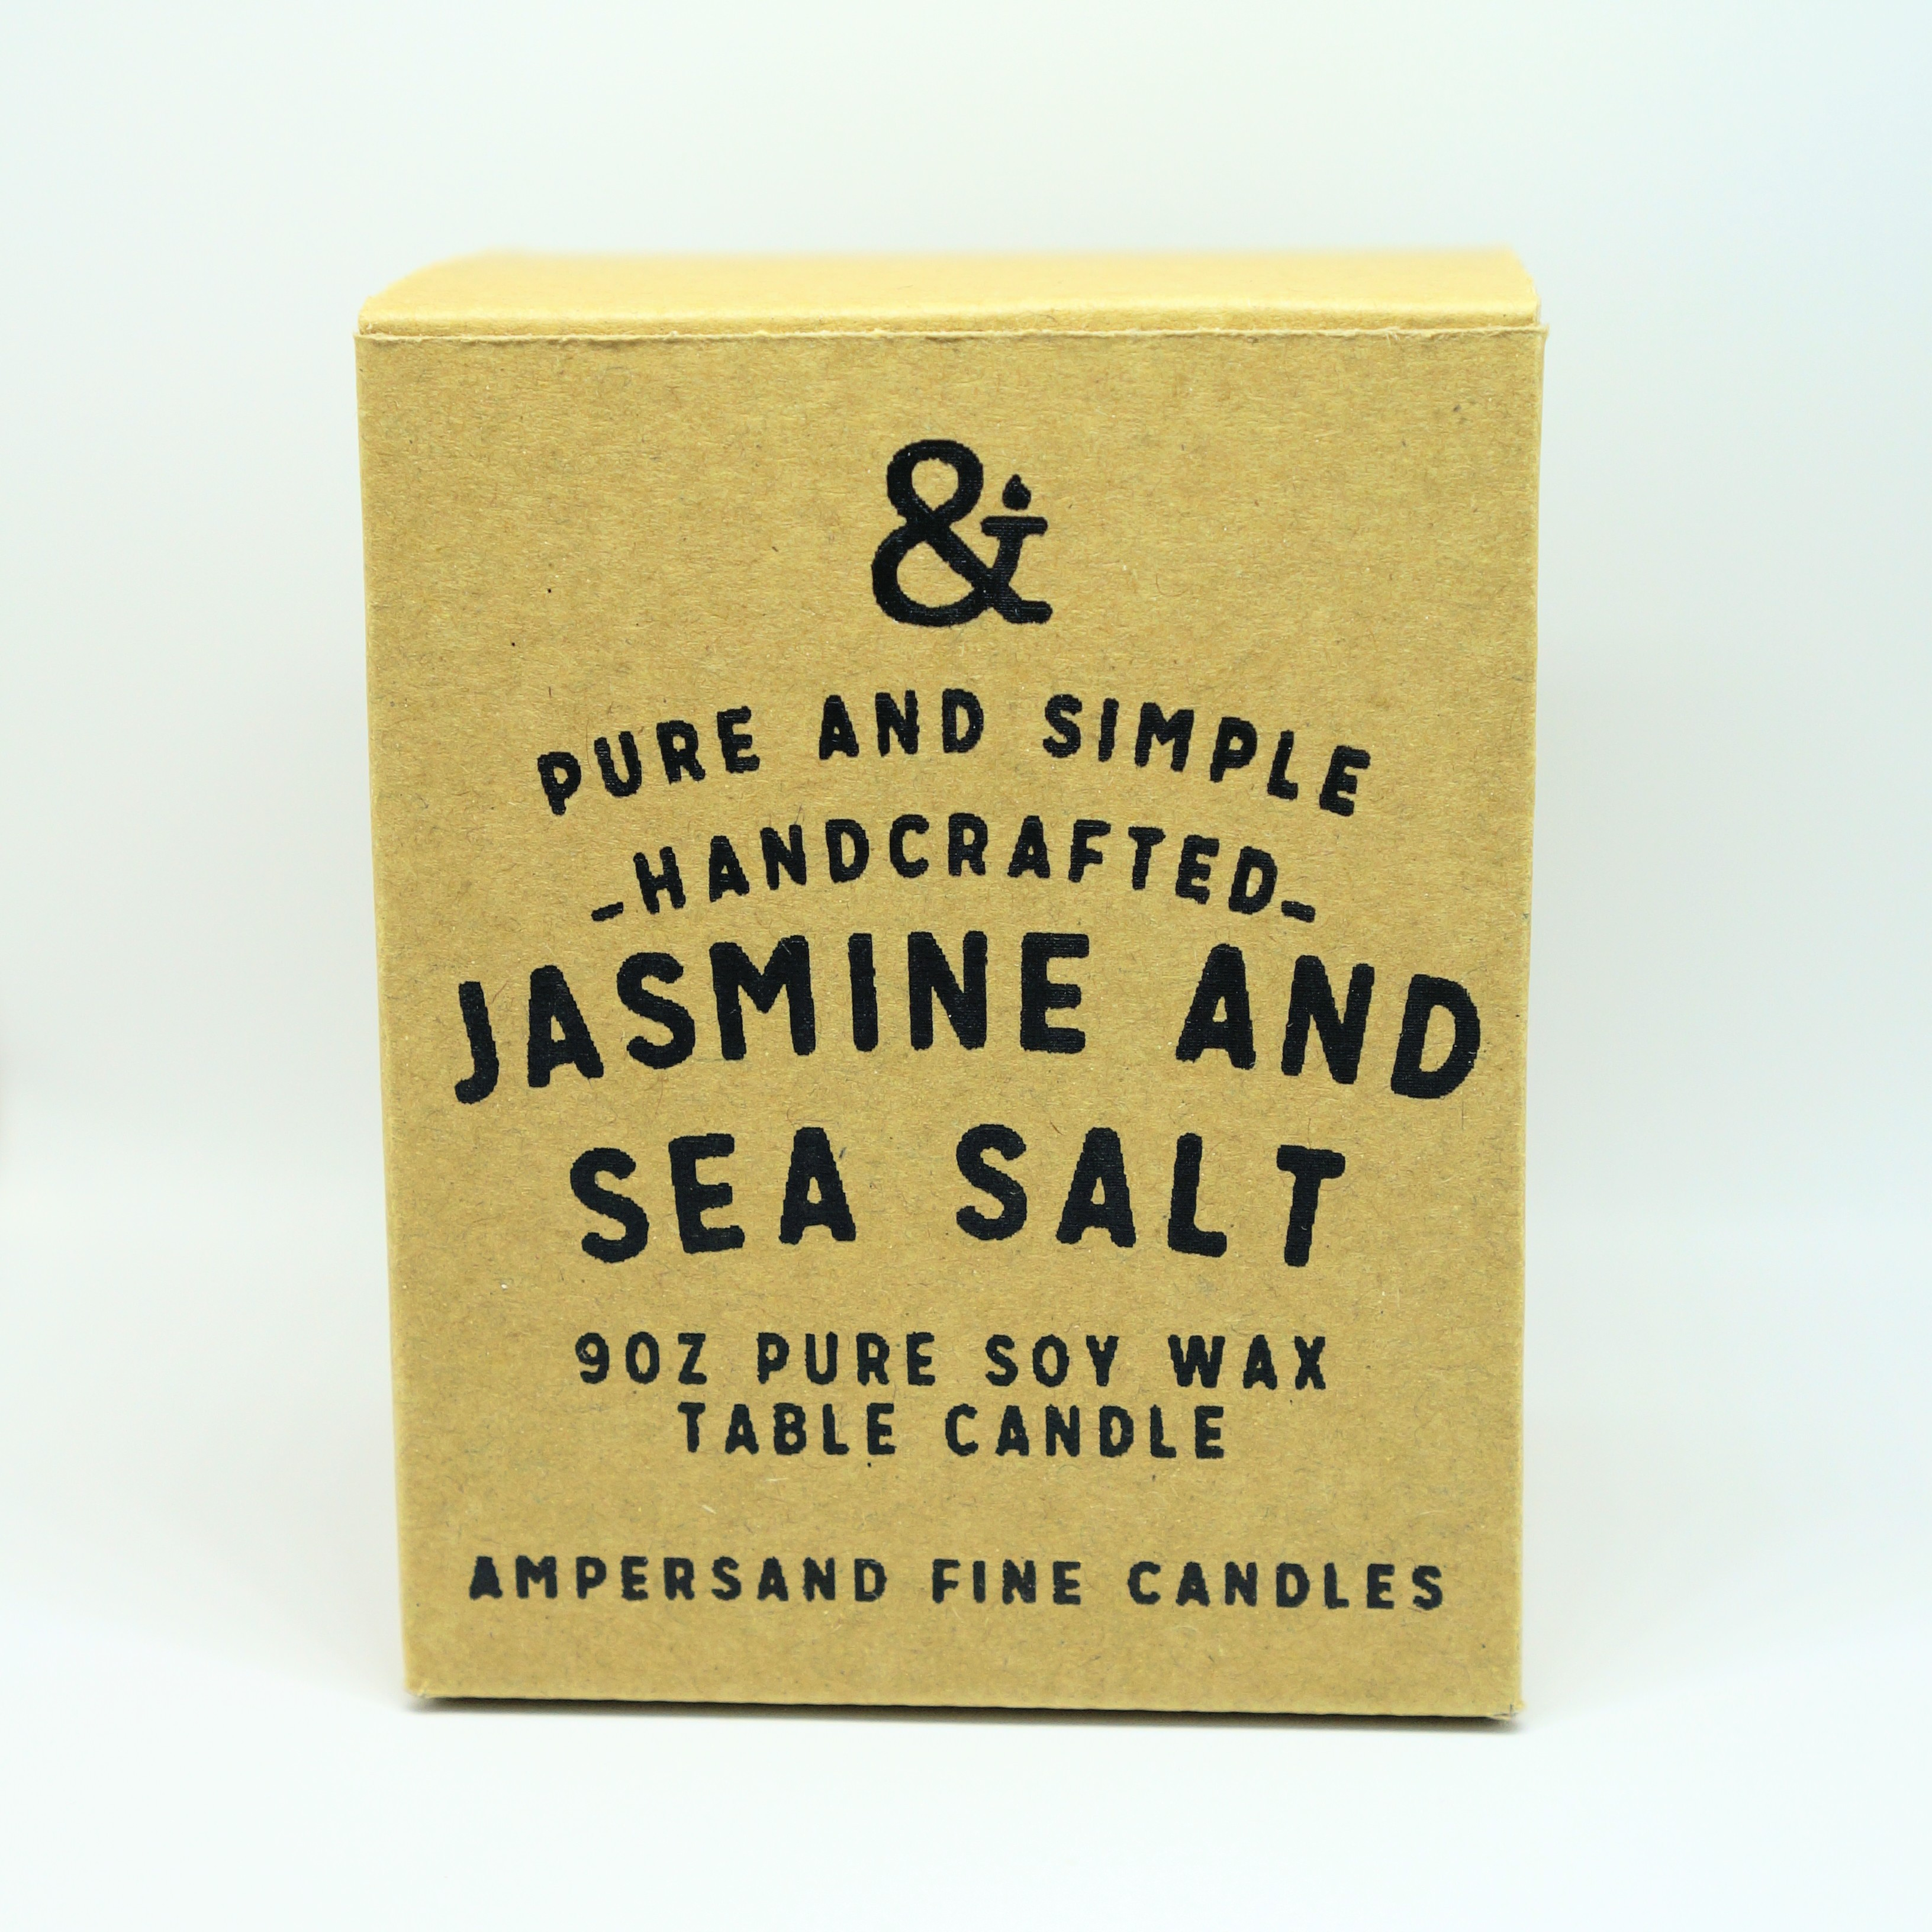 9oz Amber Jar Candle -JASMINE AND SEA SALT- キャンドル Candles - 画像1